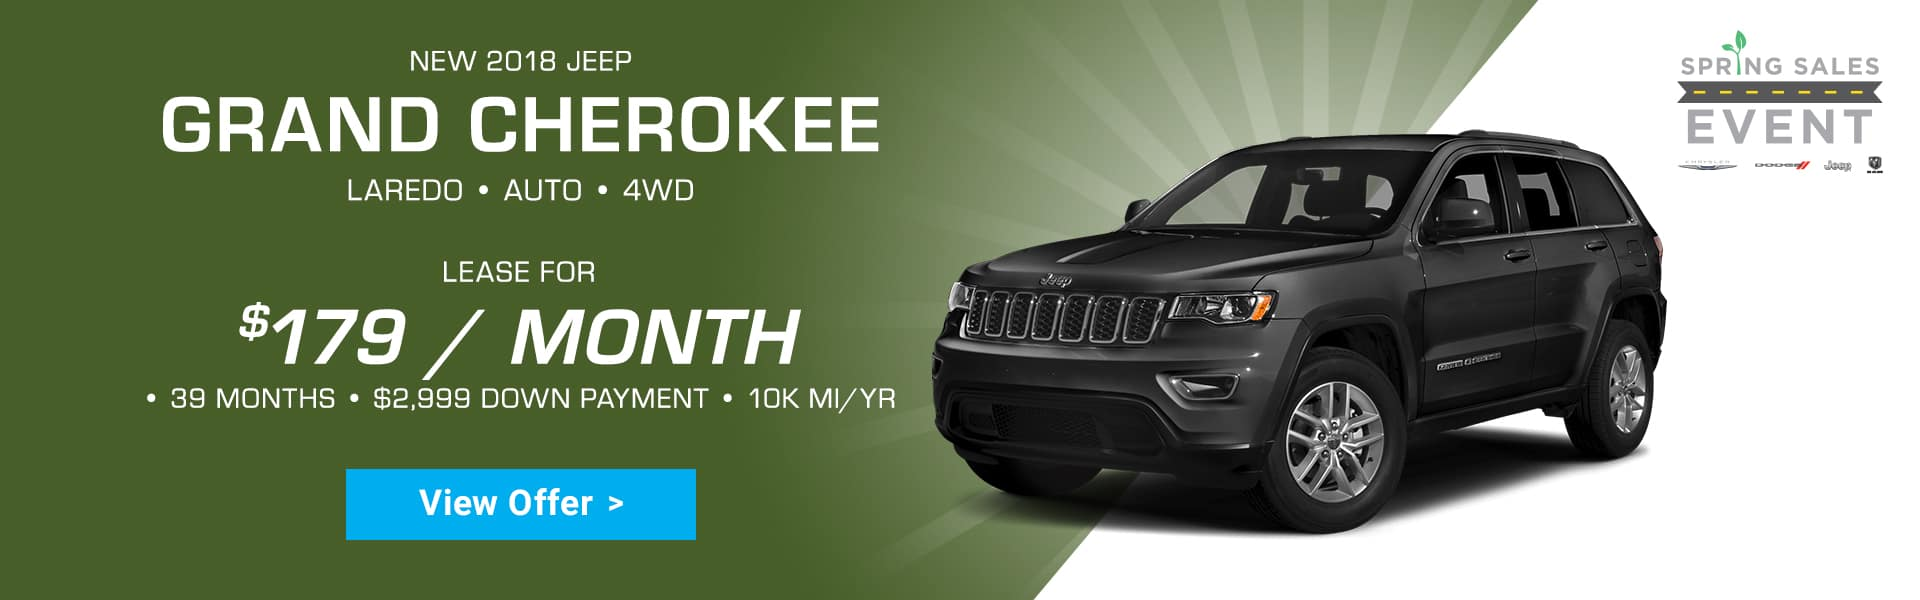 Jeep Grand Cherokee Special Offer